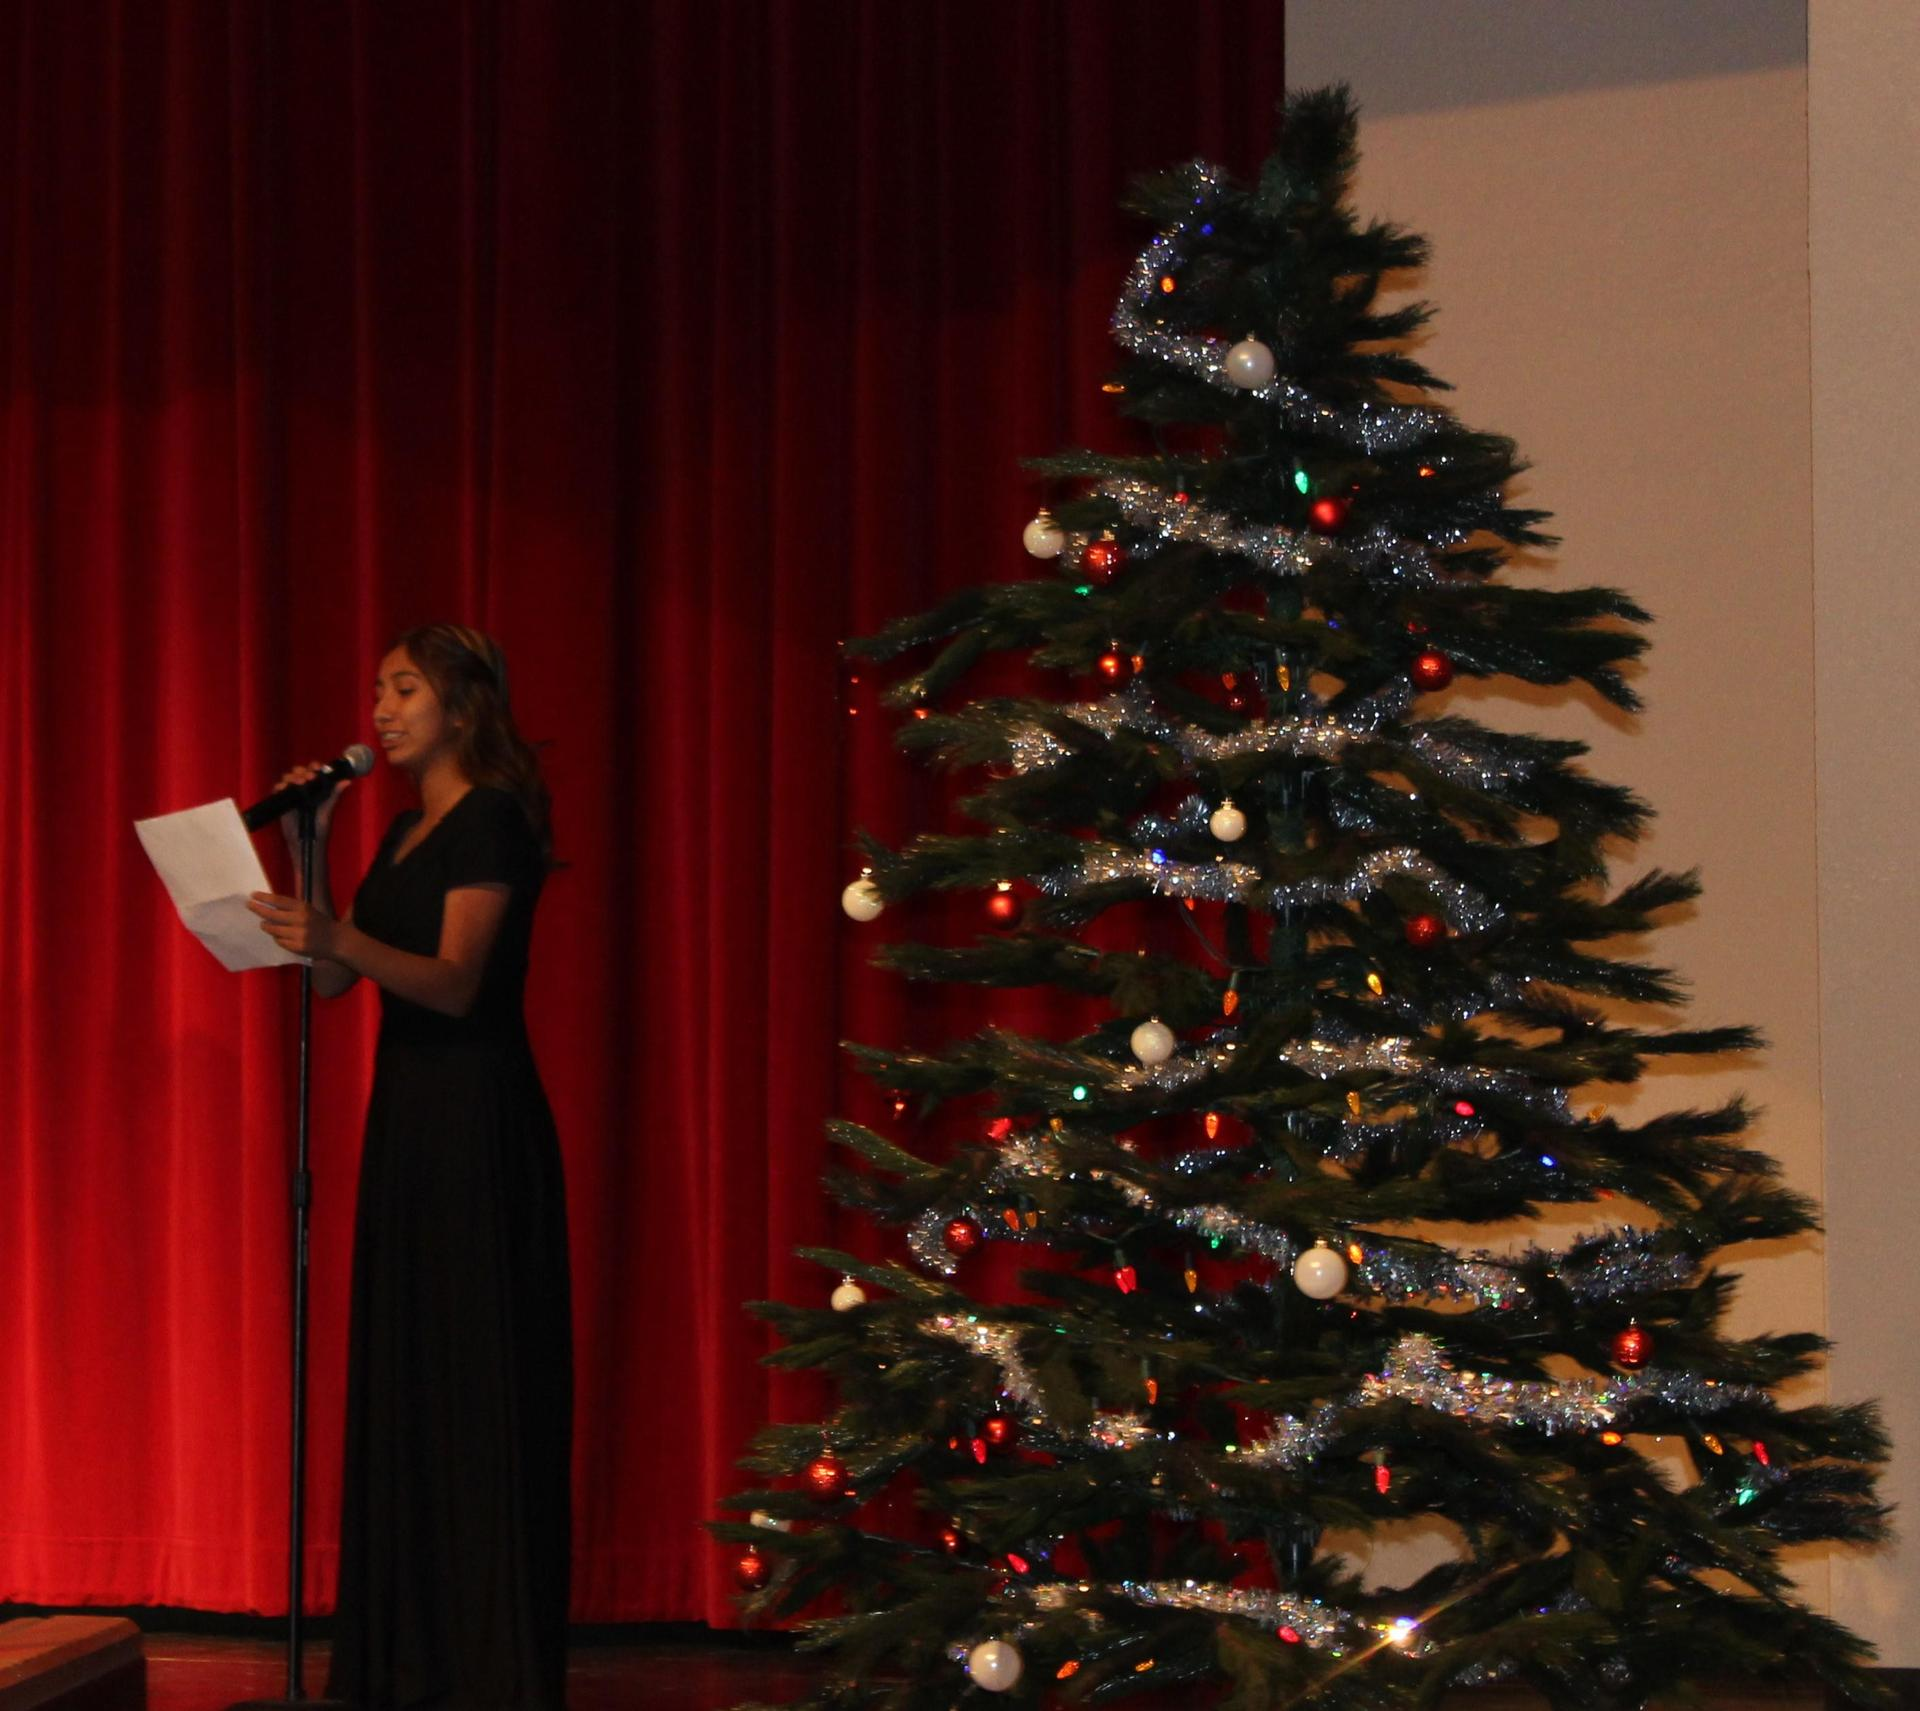 Sophia Atilano reads near the Christmas Tree.